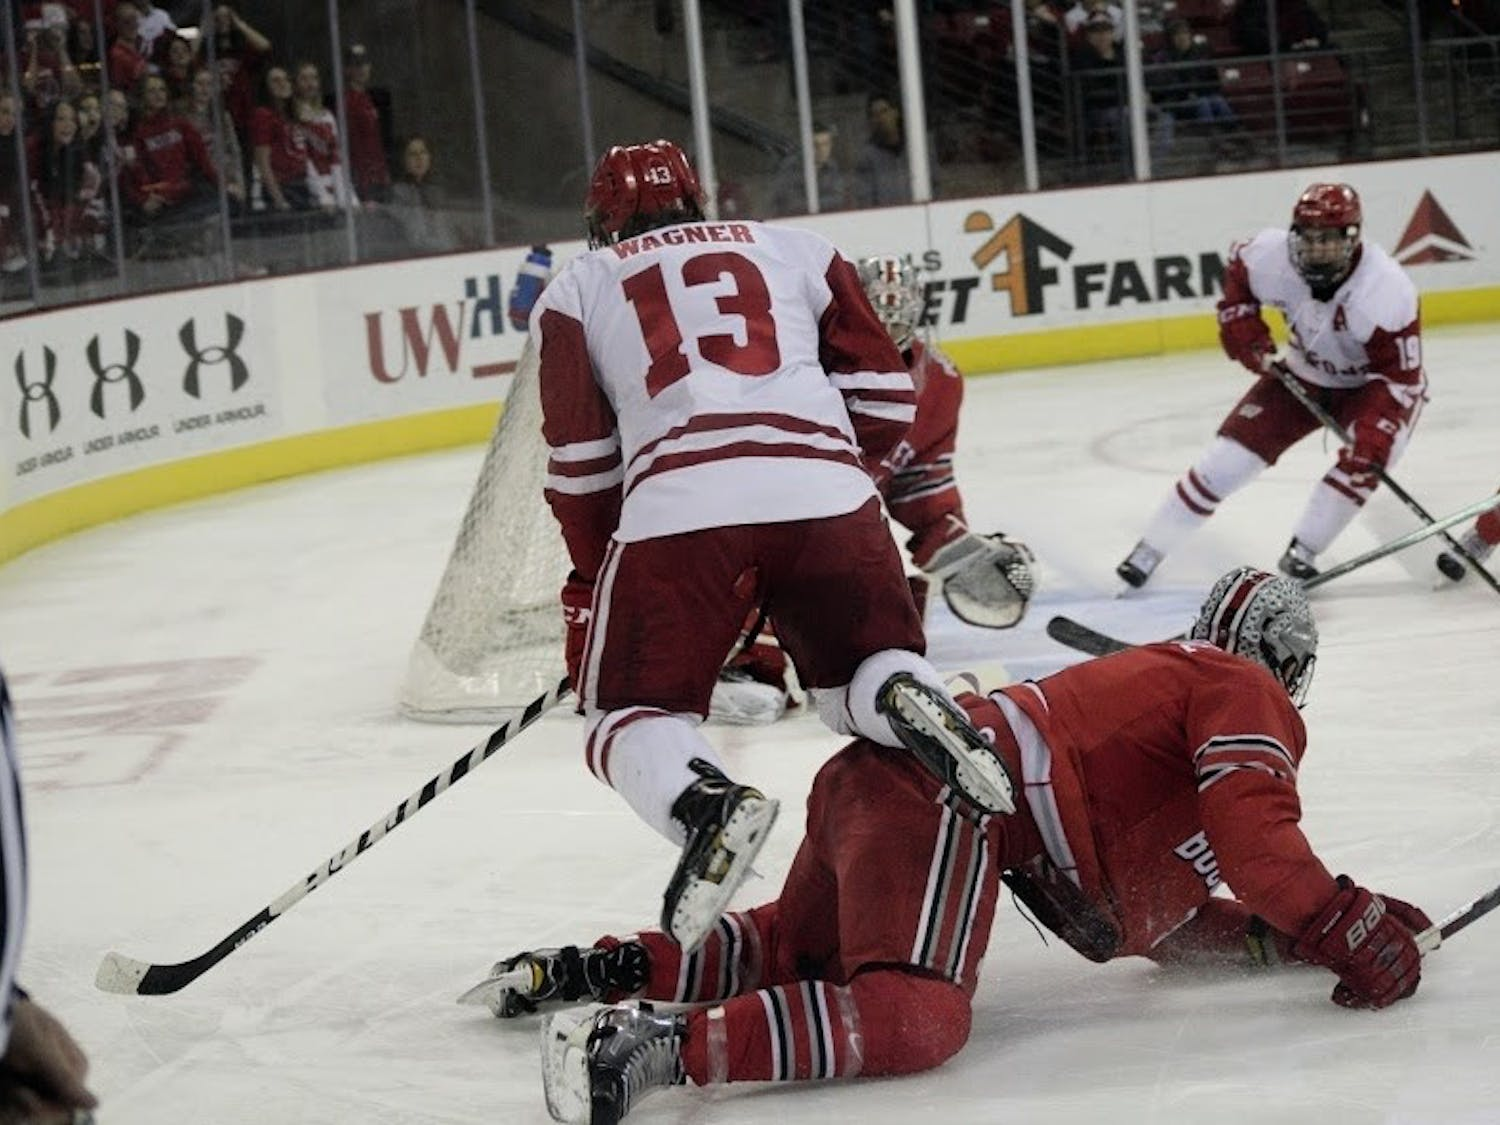 Wisconsin travels east this weekend to play No. 13 Boston College Friday and Merrimack Saturday.